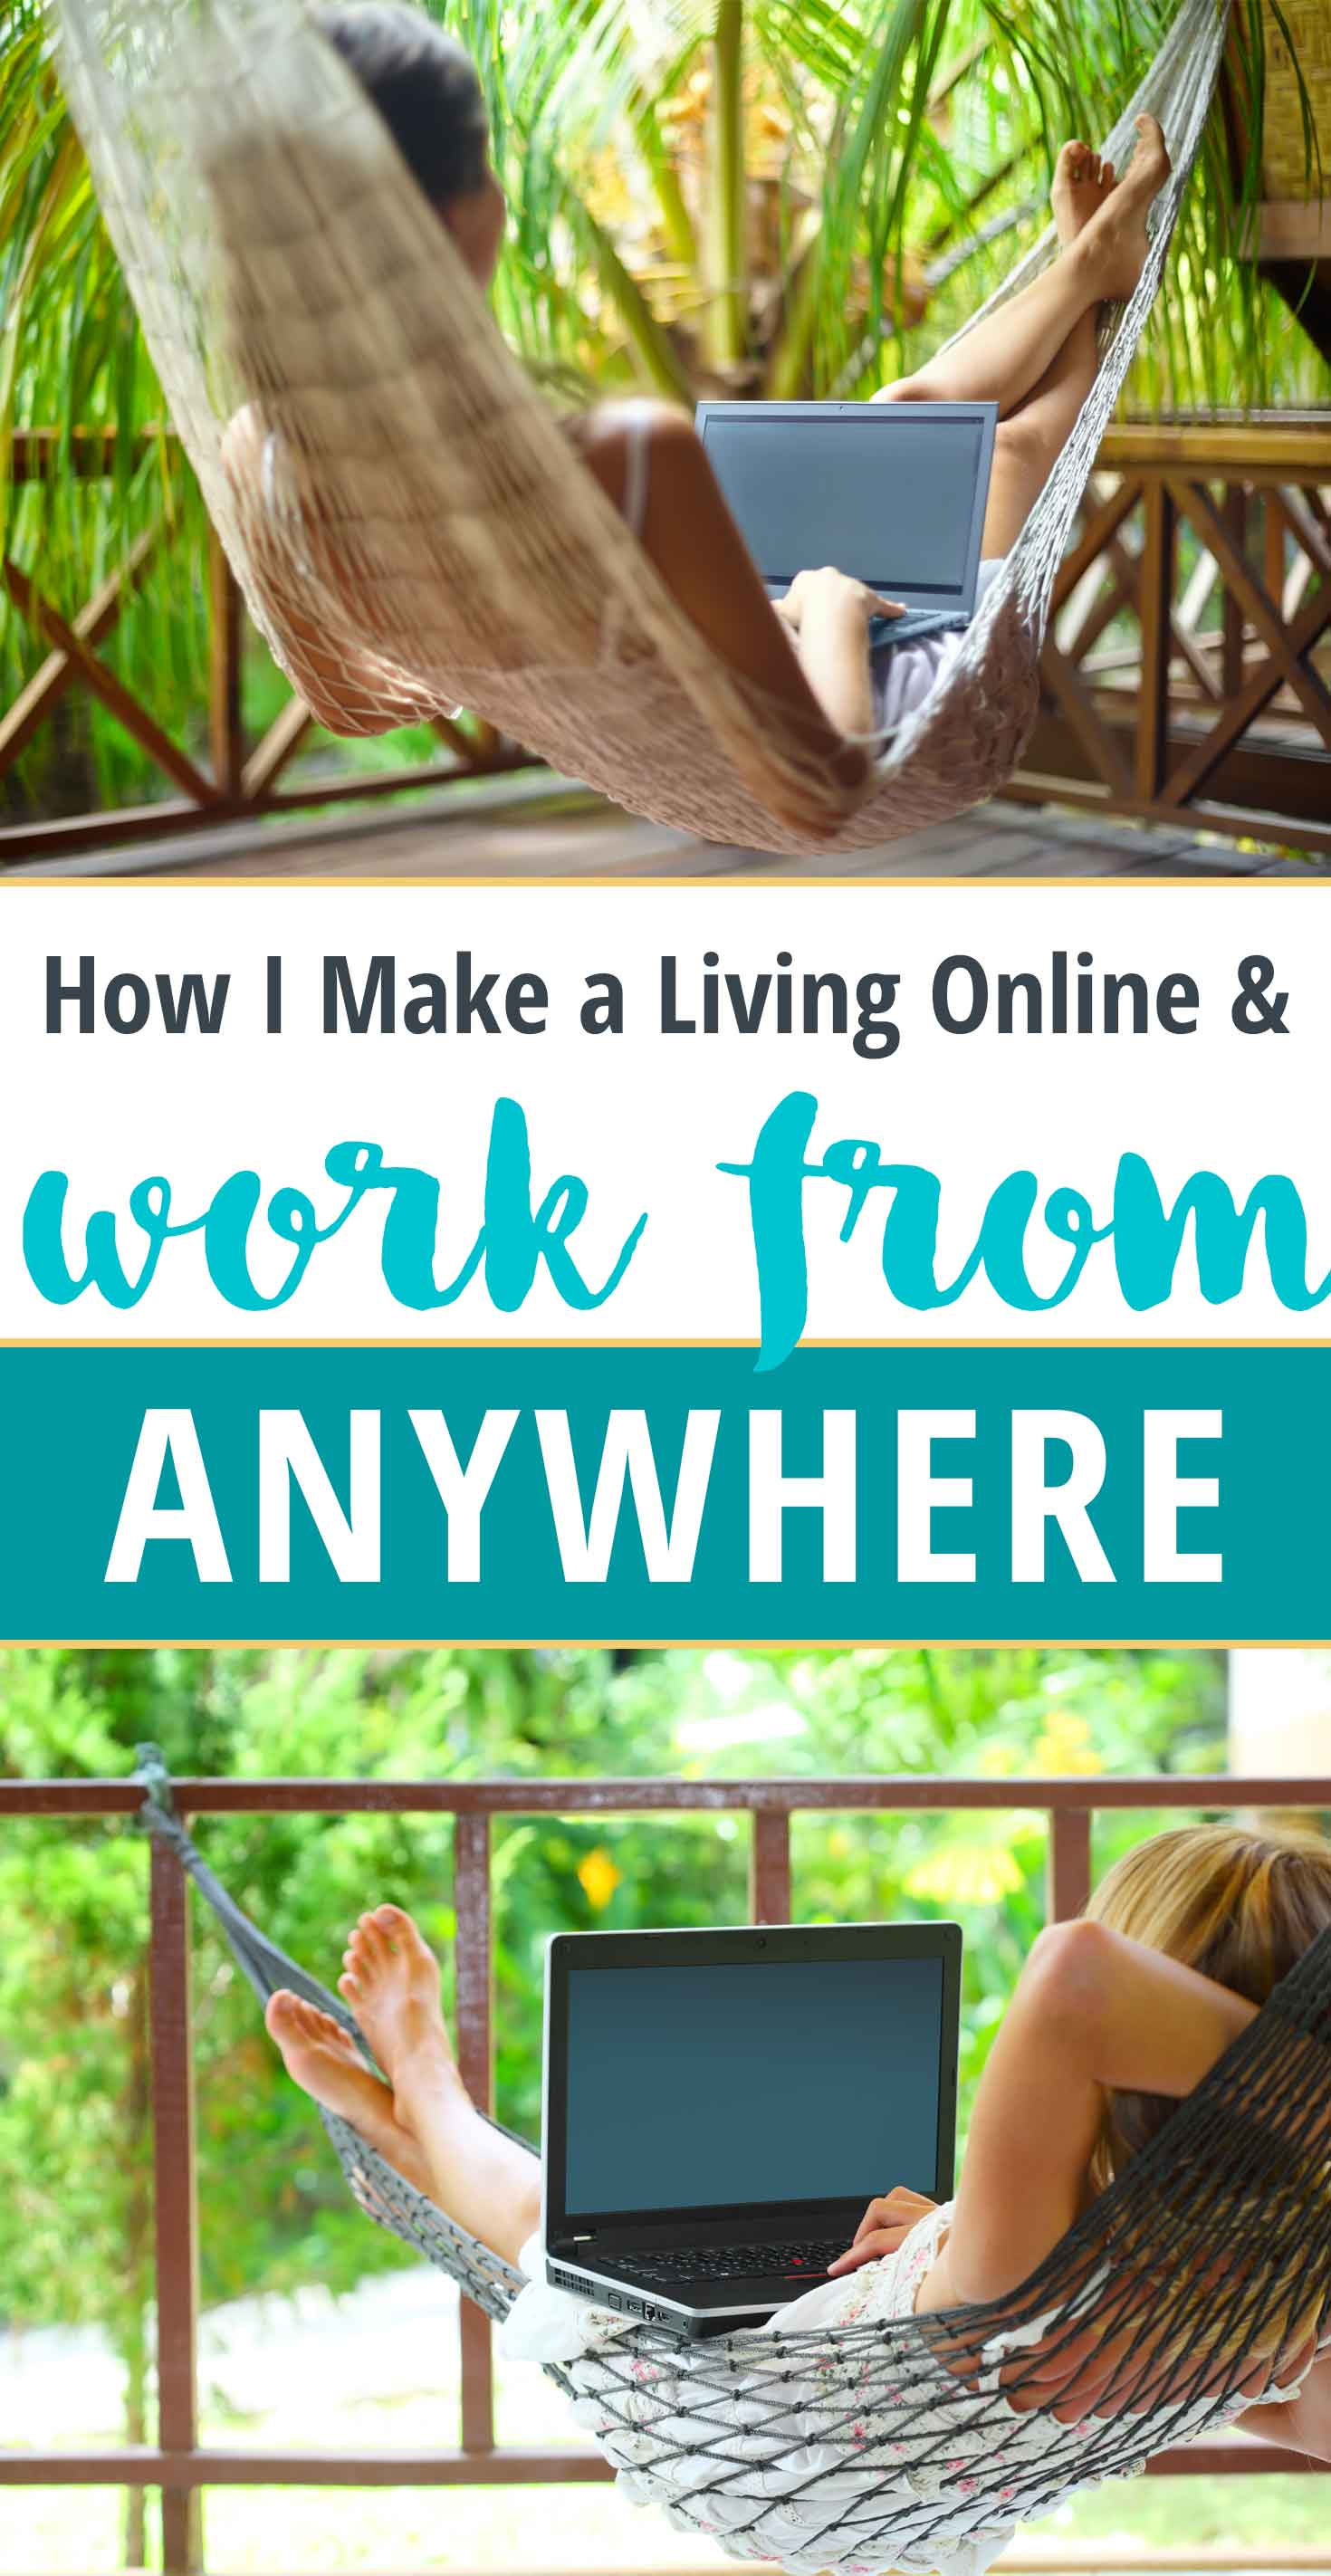 How I make a living and work from anywhere. Freedom through location independence!